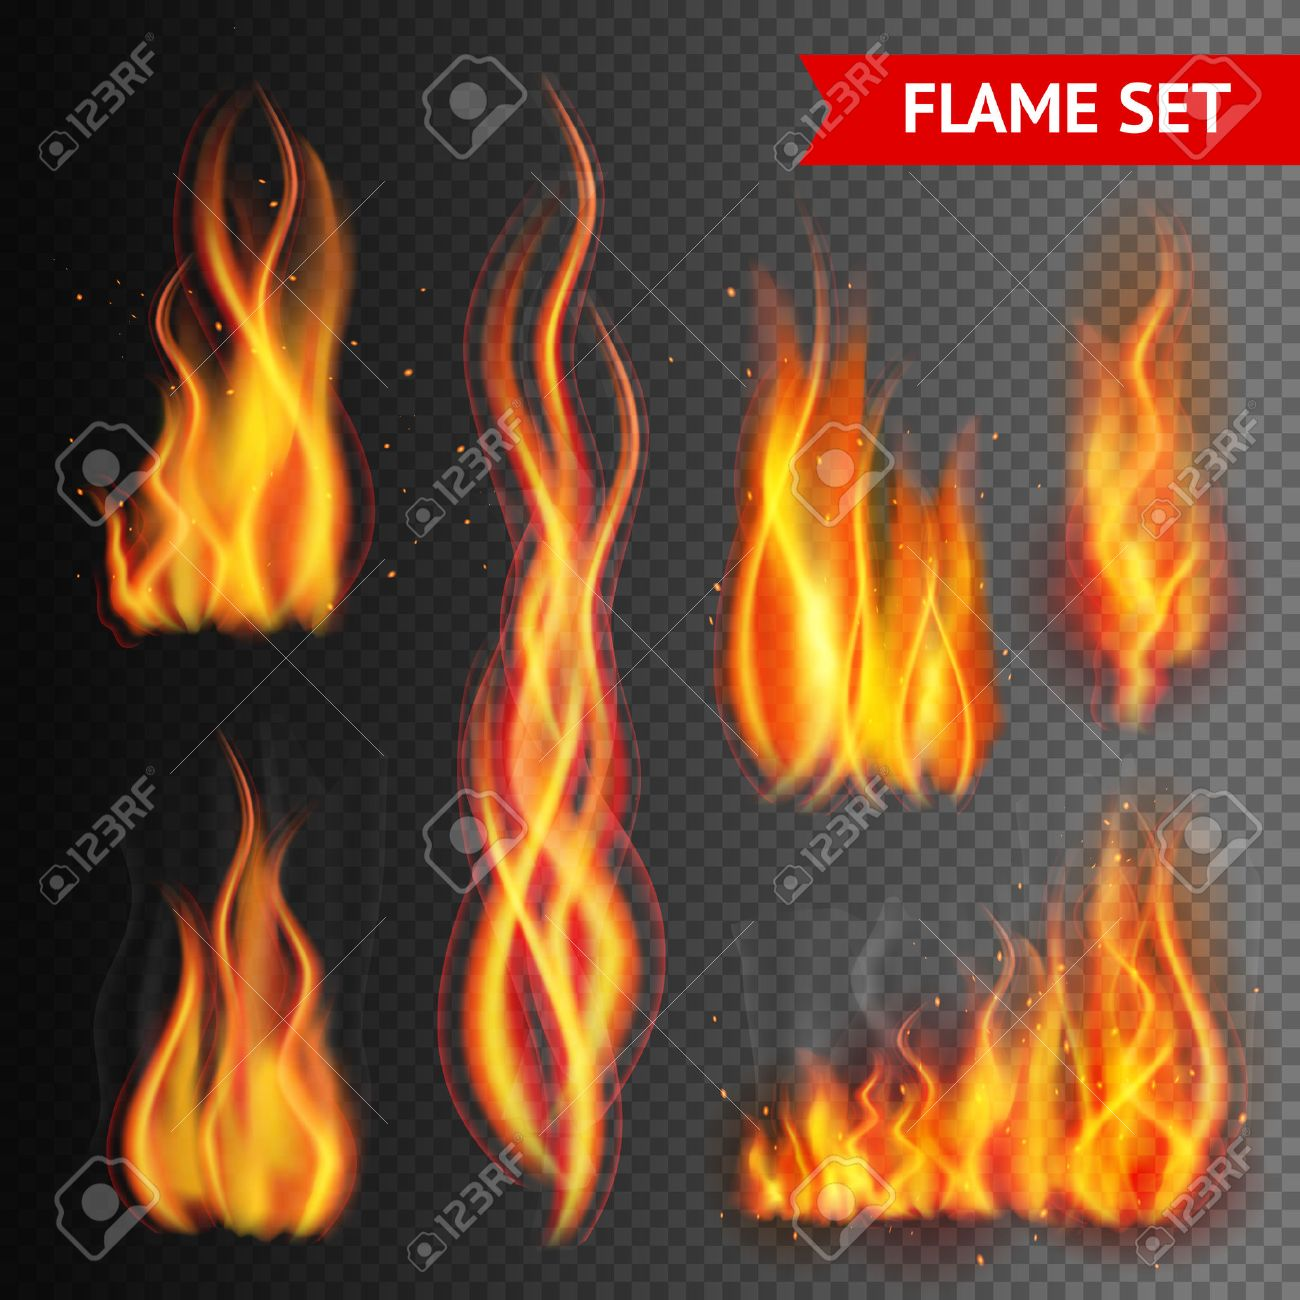 Fire flame strokes realistic isolated on transparent background vector illustration Stock Vector - 50703974